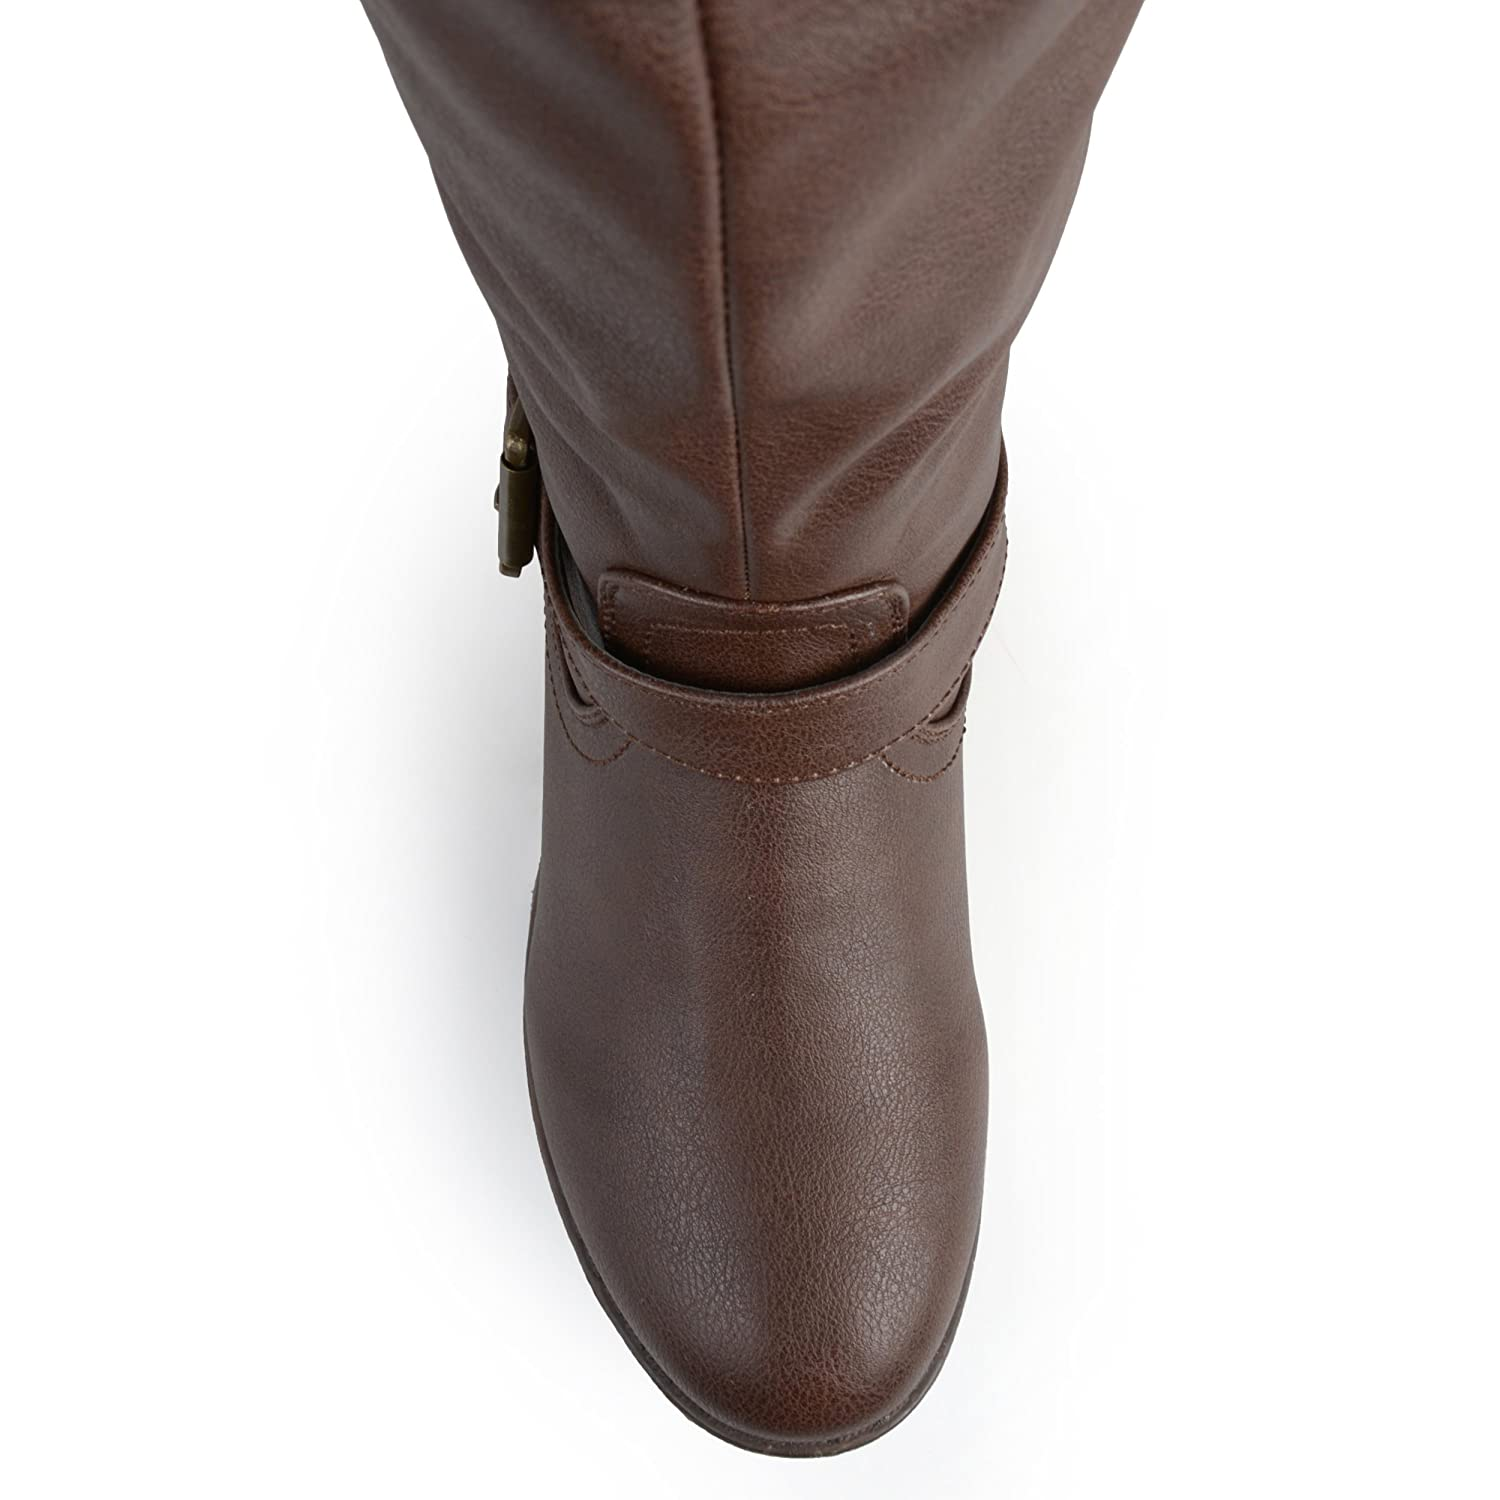 Journee Collection Womens Regular Sized, Wide-Calf and Extra Wide-Calf Studded Knee-High Riding Boot B00MI6FOF0 7 W US|Brown